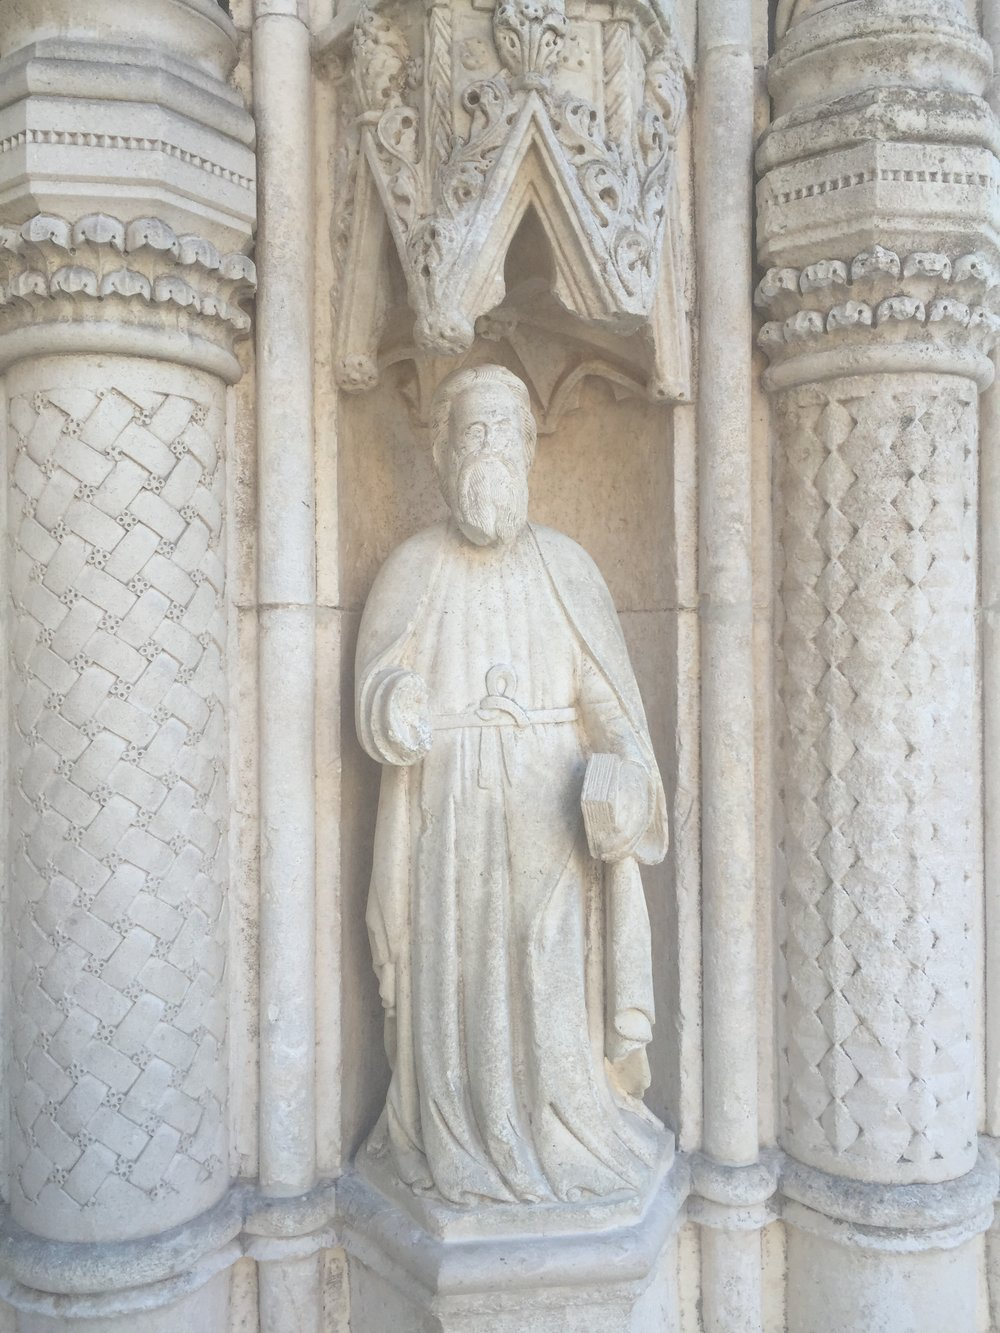 St. James carrying his chisel and the Holy Book. He is elegant, classy, determined,and sort of suave. Kind of like a 14th century Marlboro Man if ever there was one.